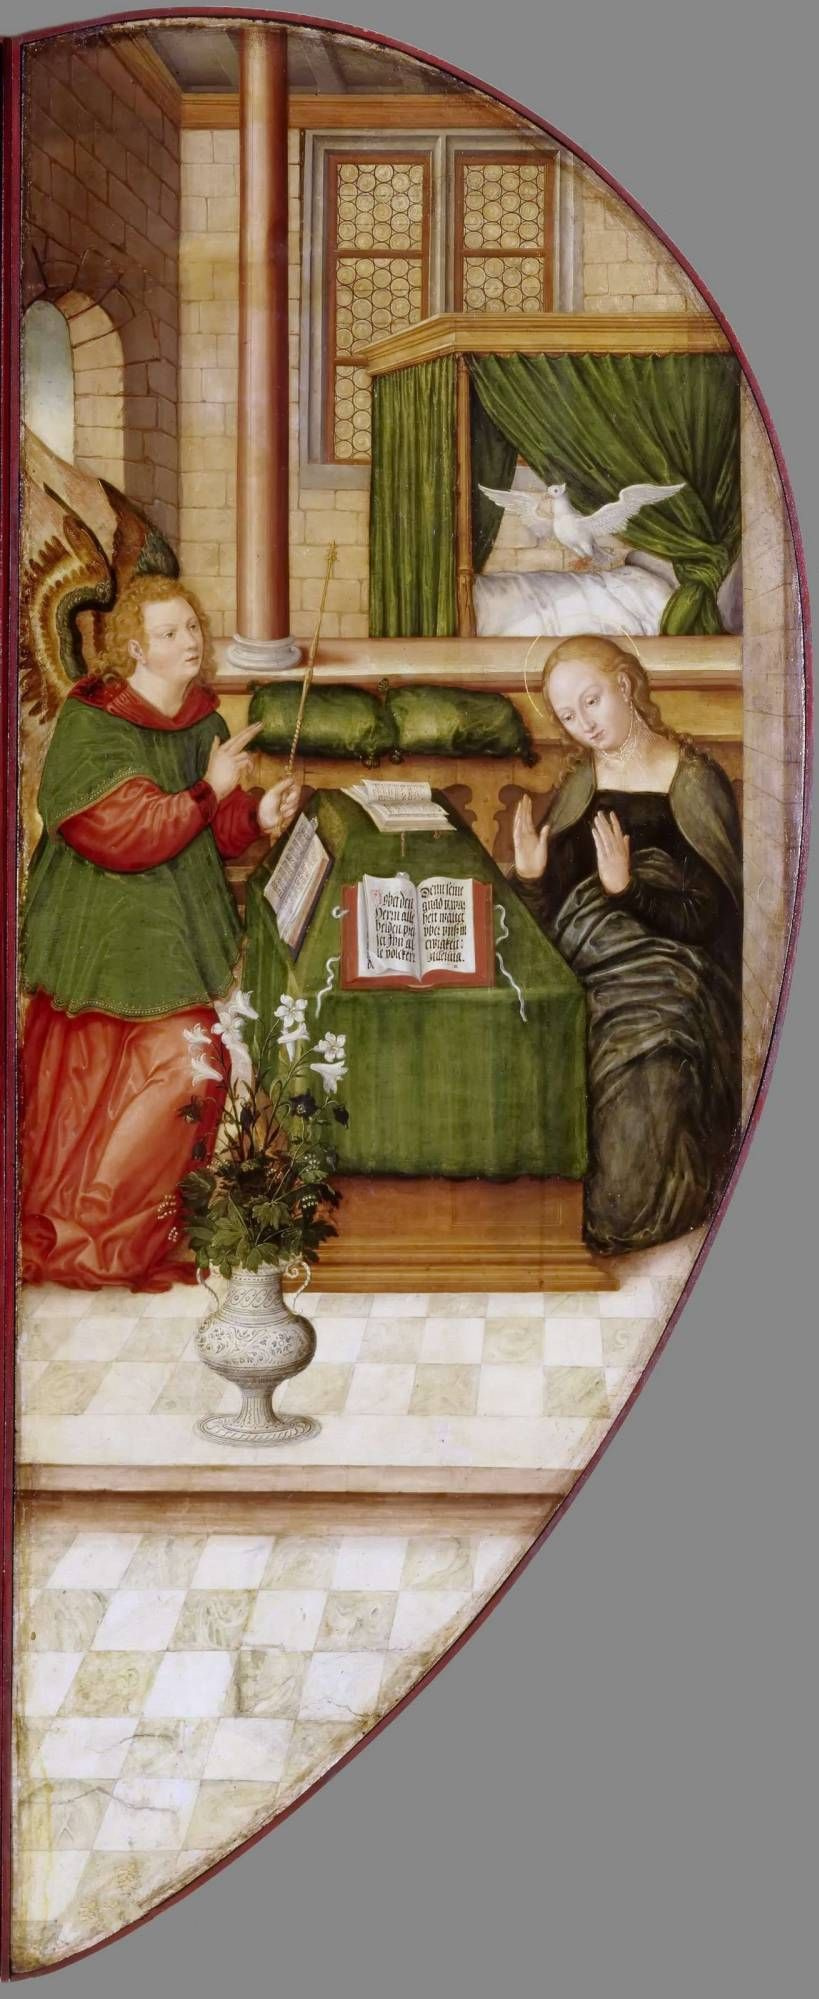 Lucas the Younger Cranach. The Altar Colditzer. Right outer wing: Annunciation